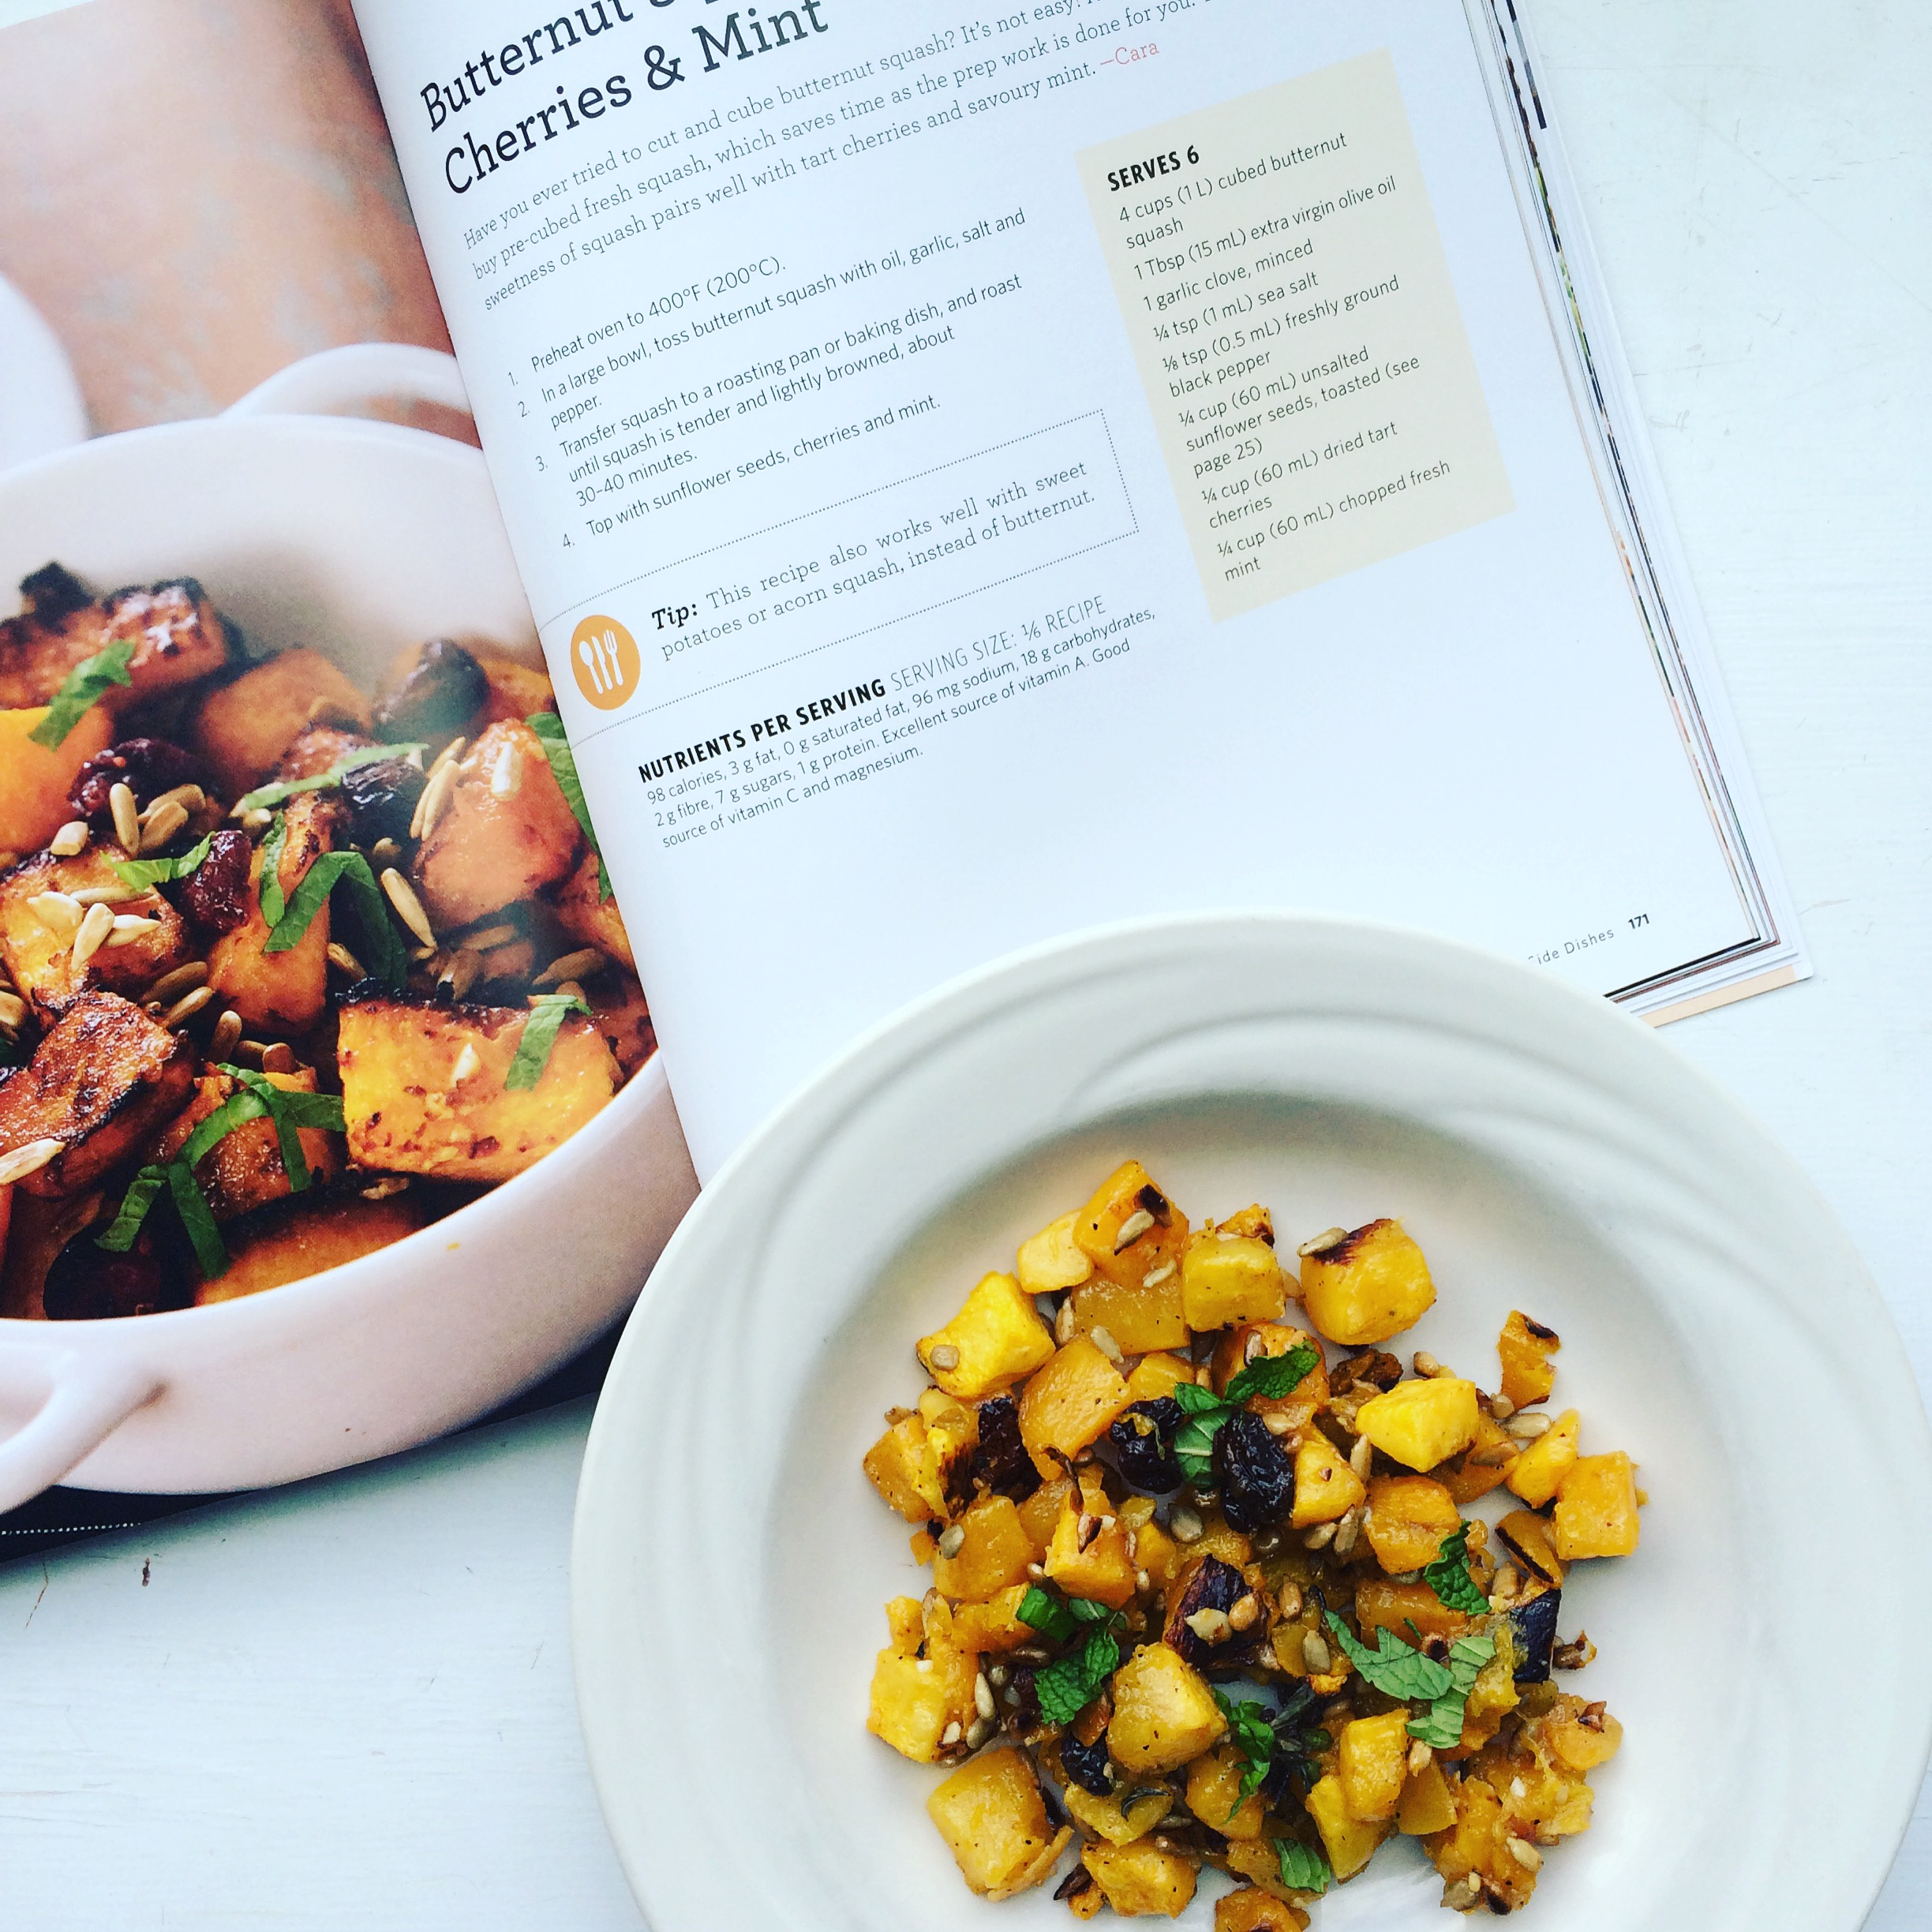 Butternut squash with dried cherries and mint